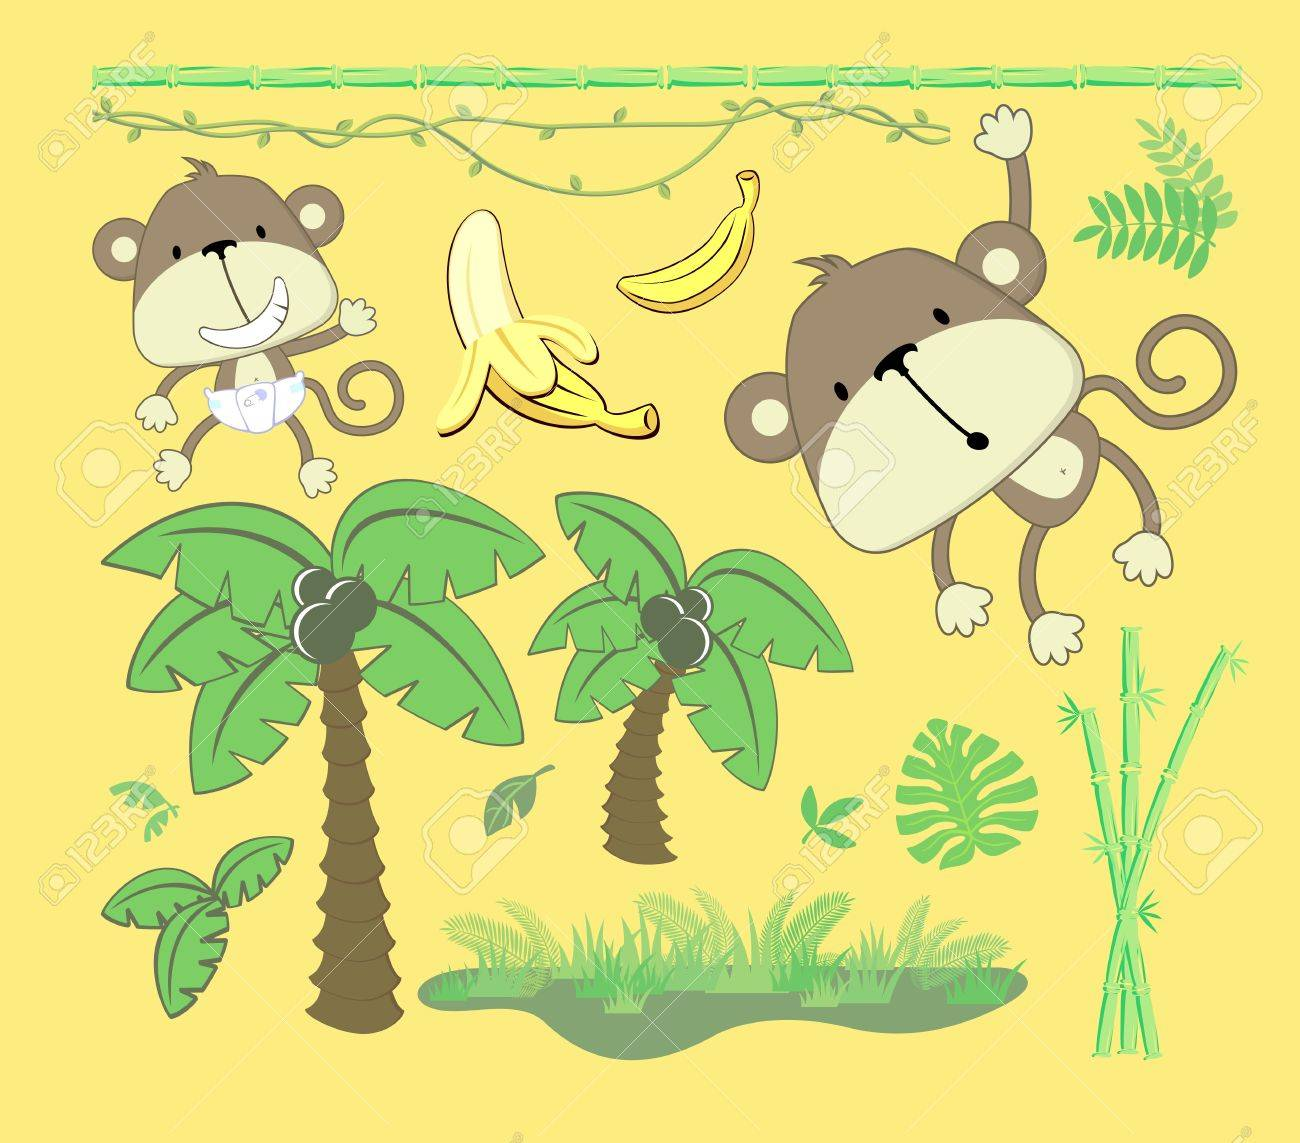 vector image of jungle theme, cartoon design elements set for baby and childs decoration Stock Vector - 15834138